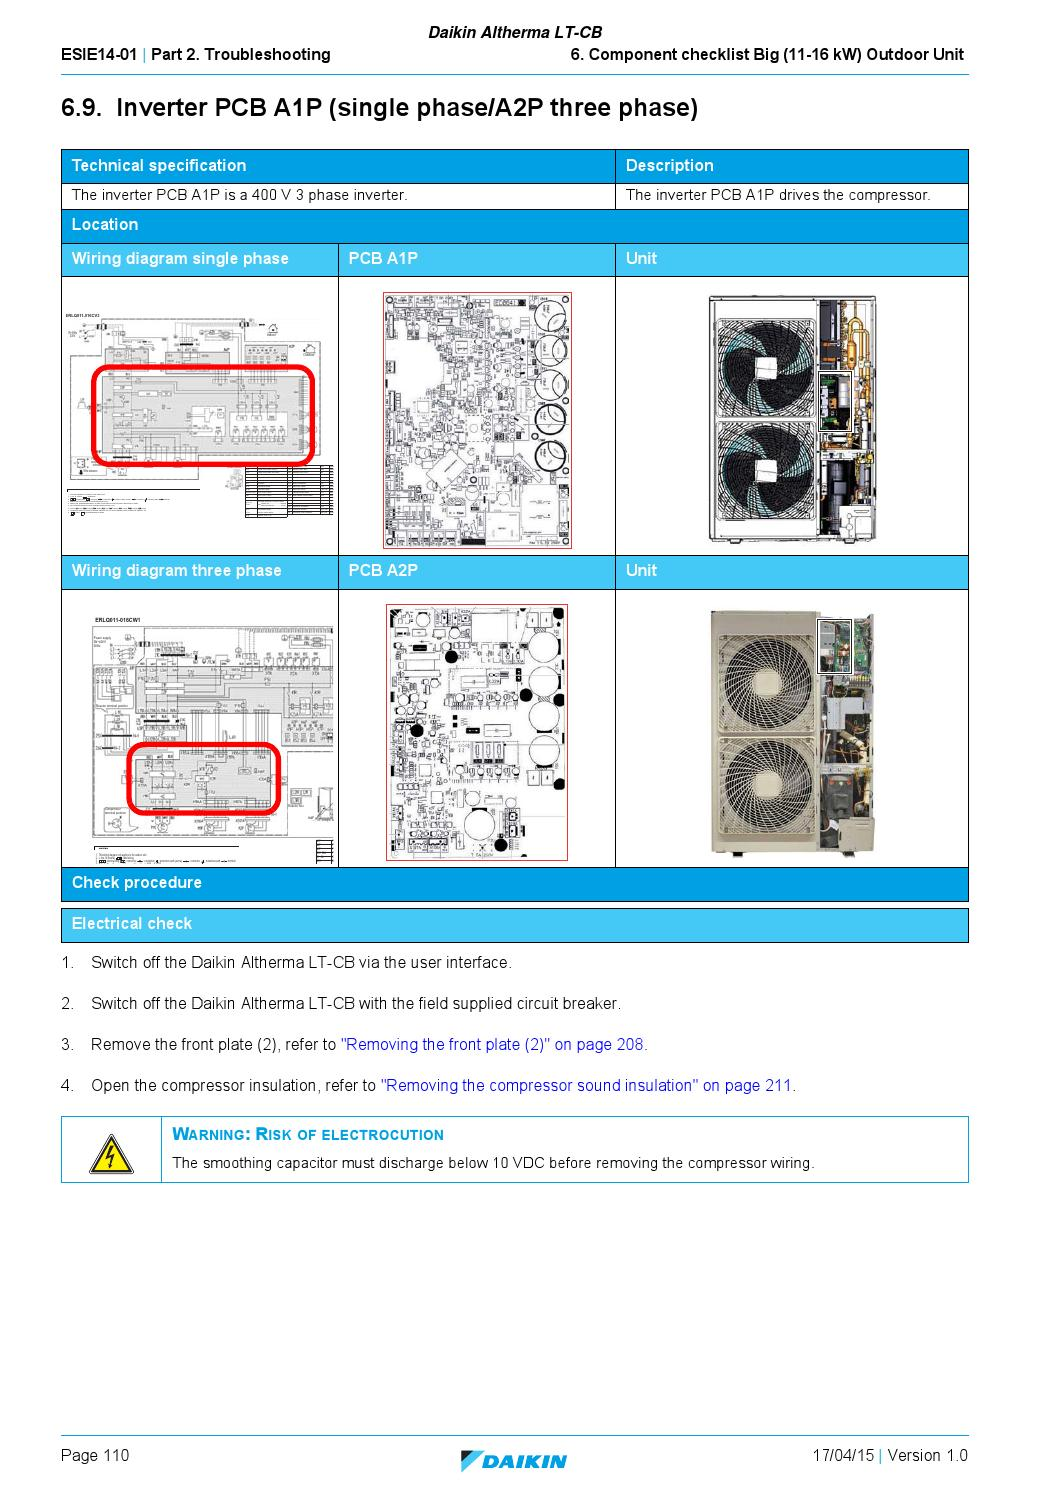 Daikin Altherma LT-CB - English Service Manual by PAULO MORENO - issuu